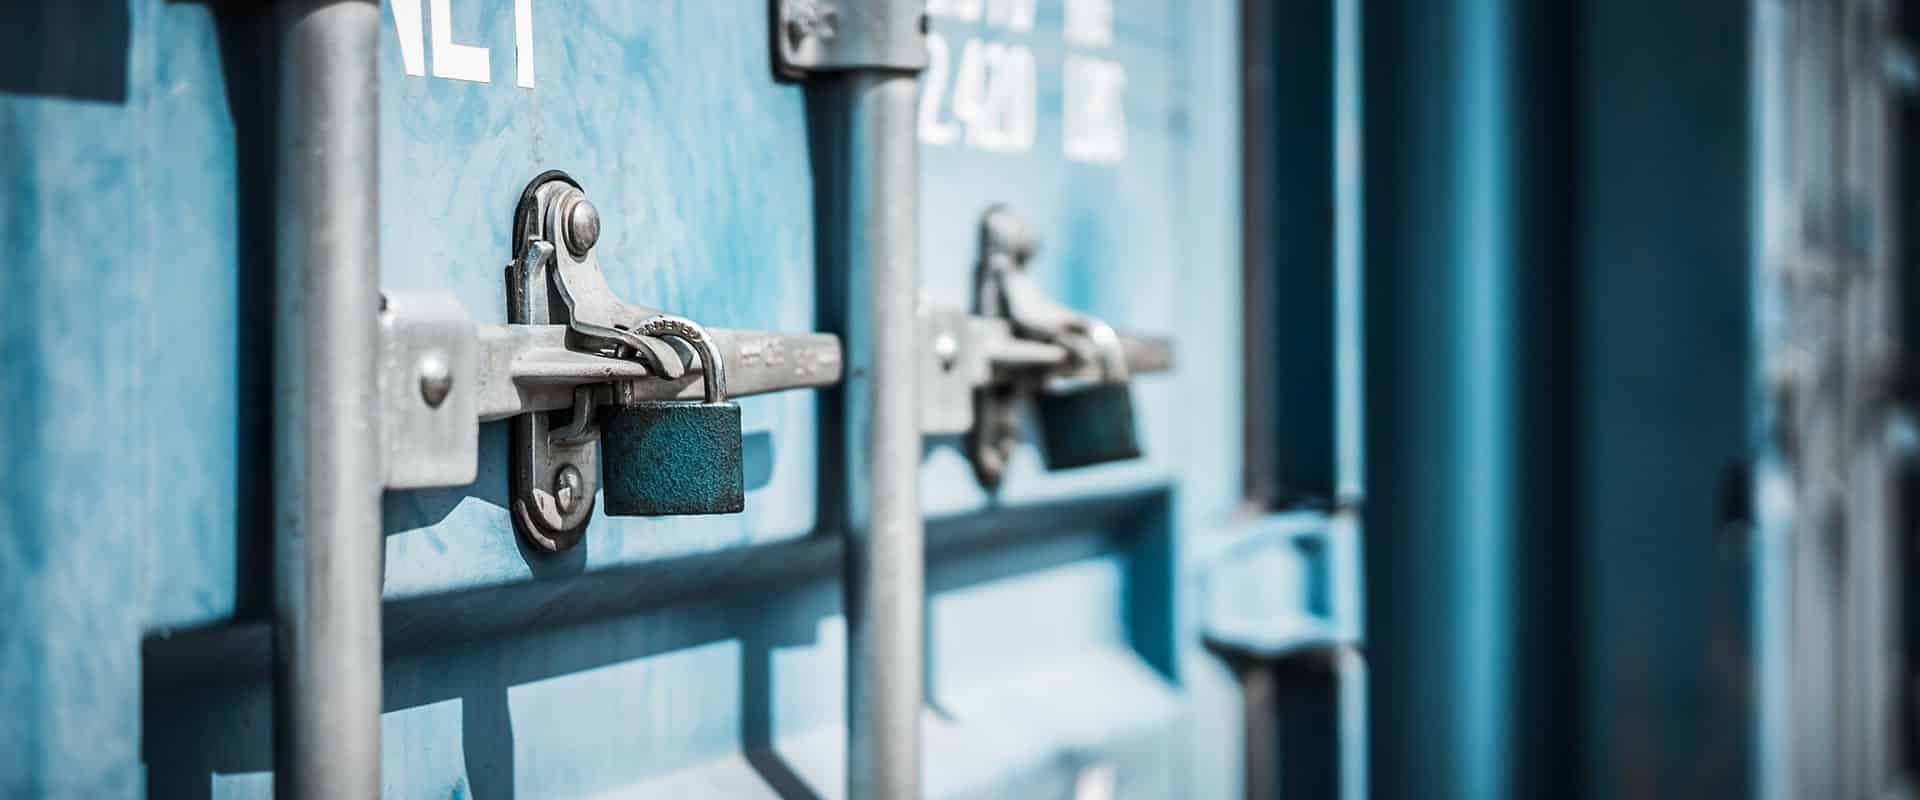 Light blue shipping containers with locks